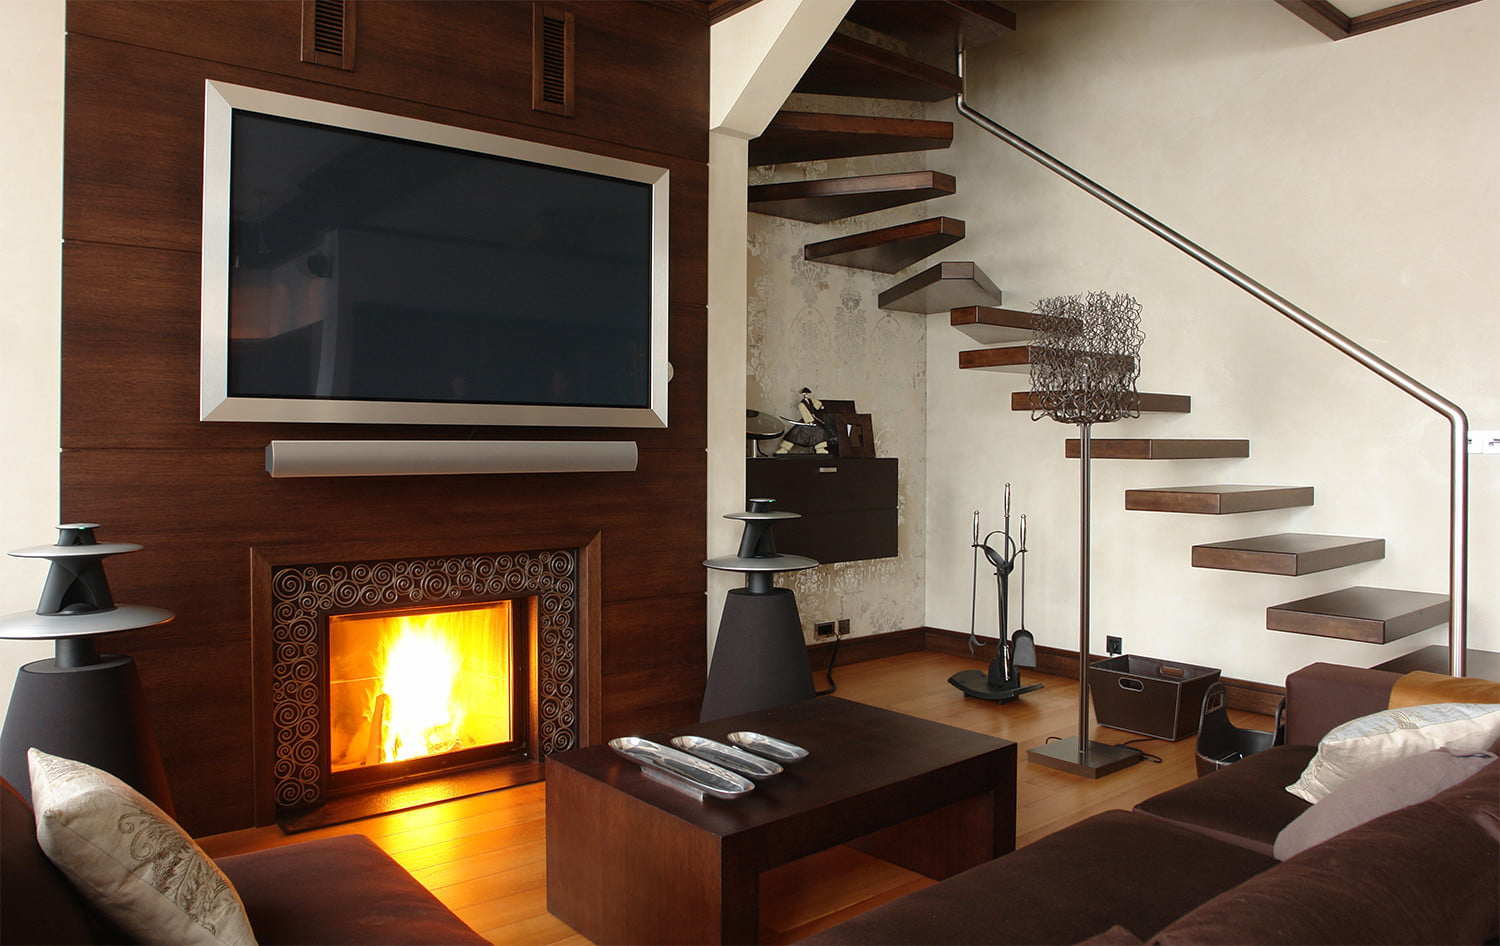 Four reasons not to slap that flat screen TV over your fireplace